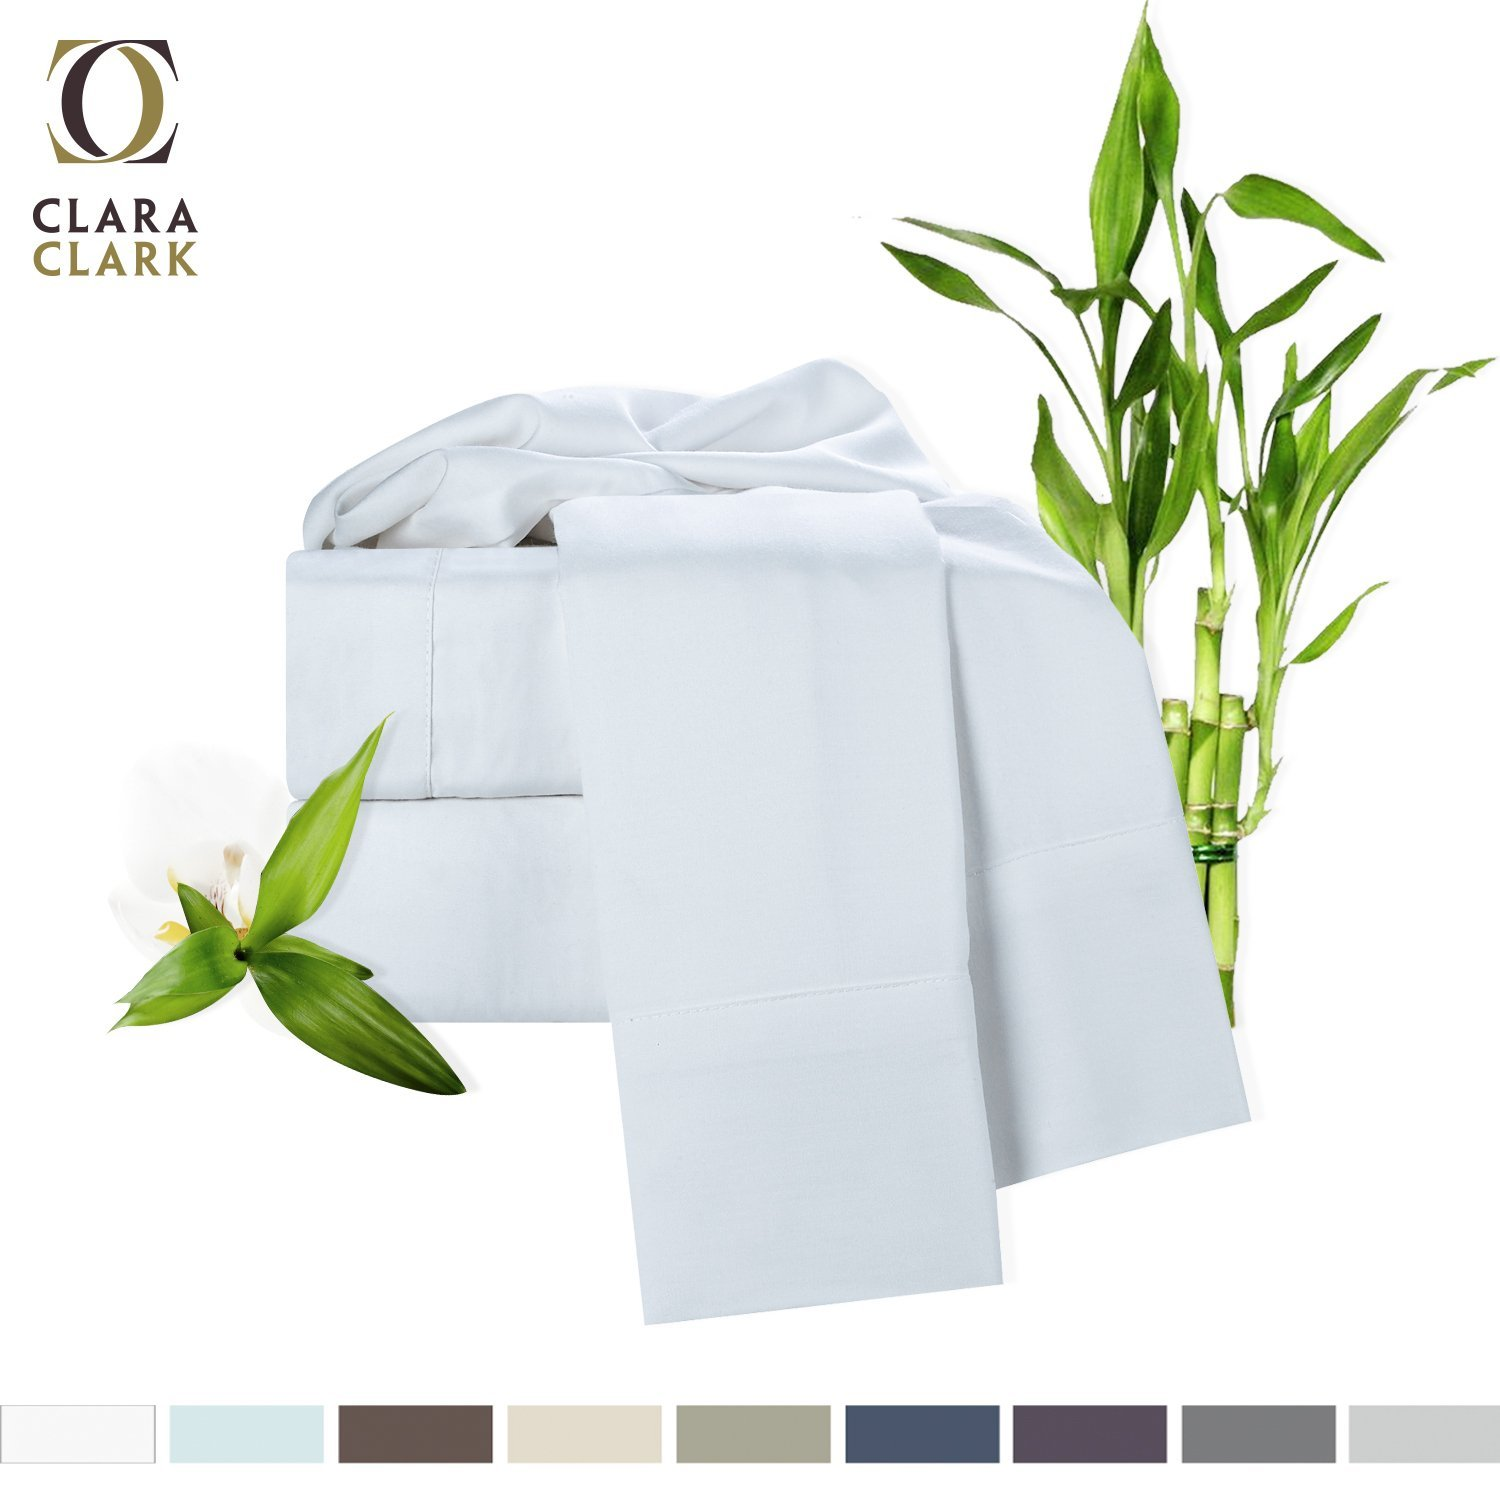 Bamboo Bed Sheet Set, White, King Size, By Clara Clark, 100% Rayon Made From Bamboo Sheets, Luxury Super Silky Soft With Extra Thick Corner Elastic Straps On Fitted Sheet, Machine Washable